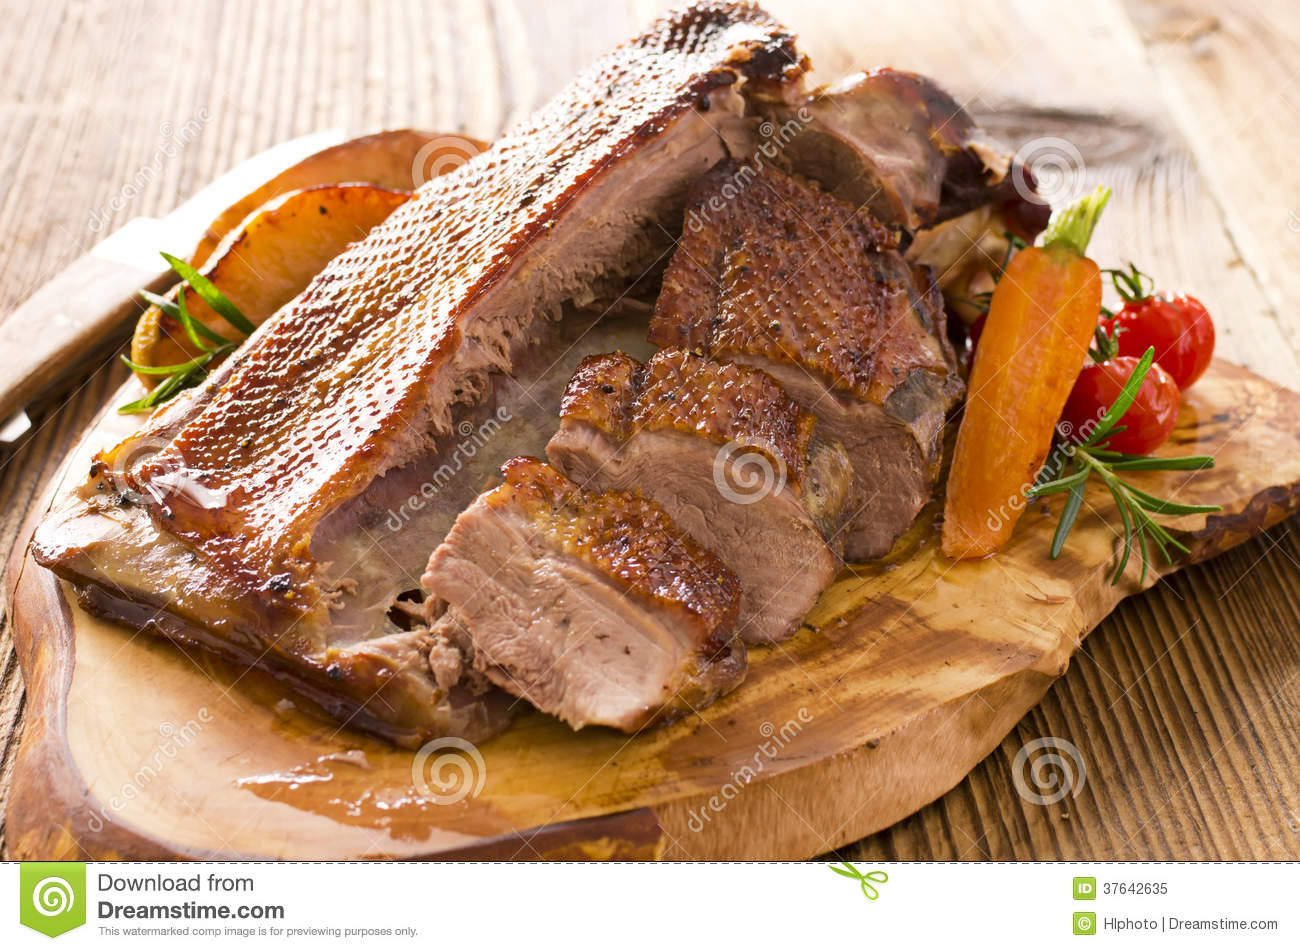 Roasted Goose Breast Fillet Royalty Free Stock Photo - Image: 37642635